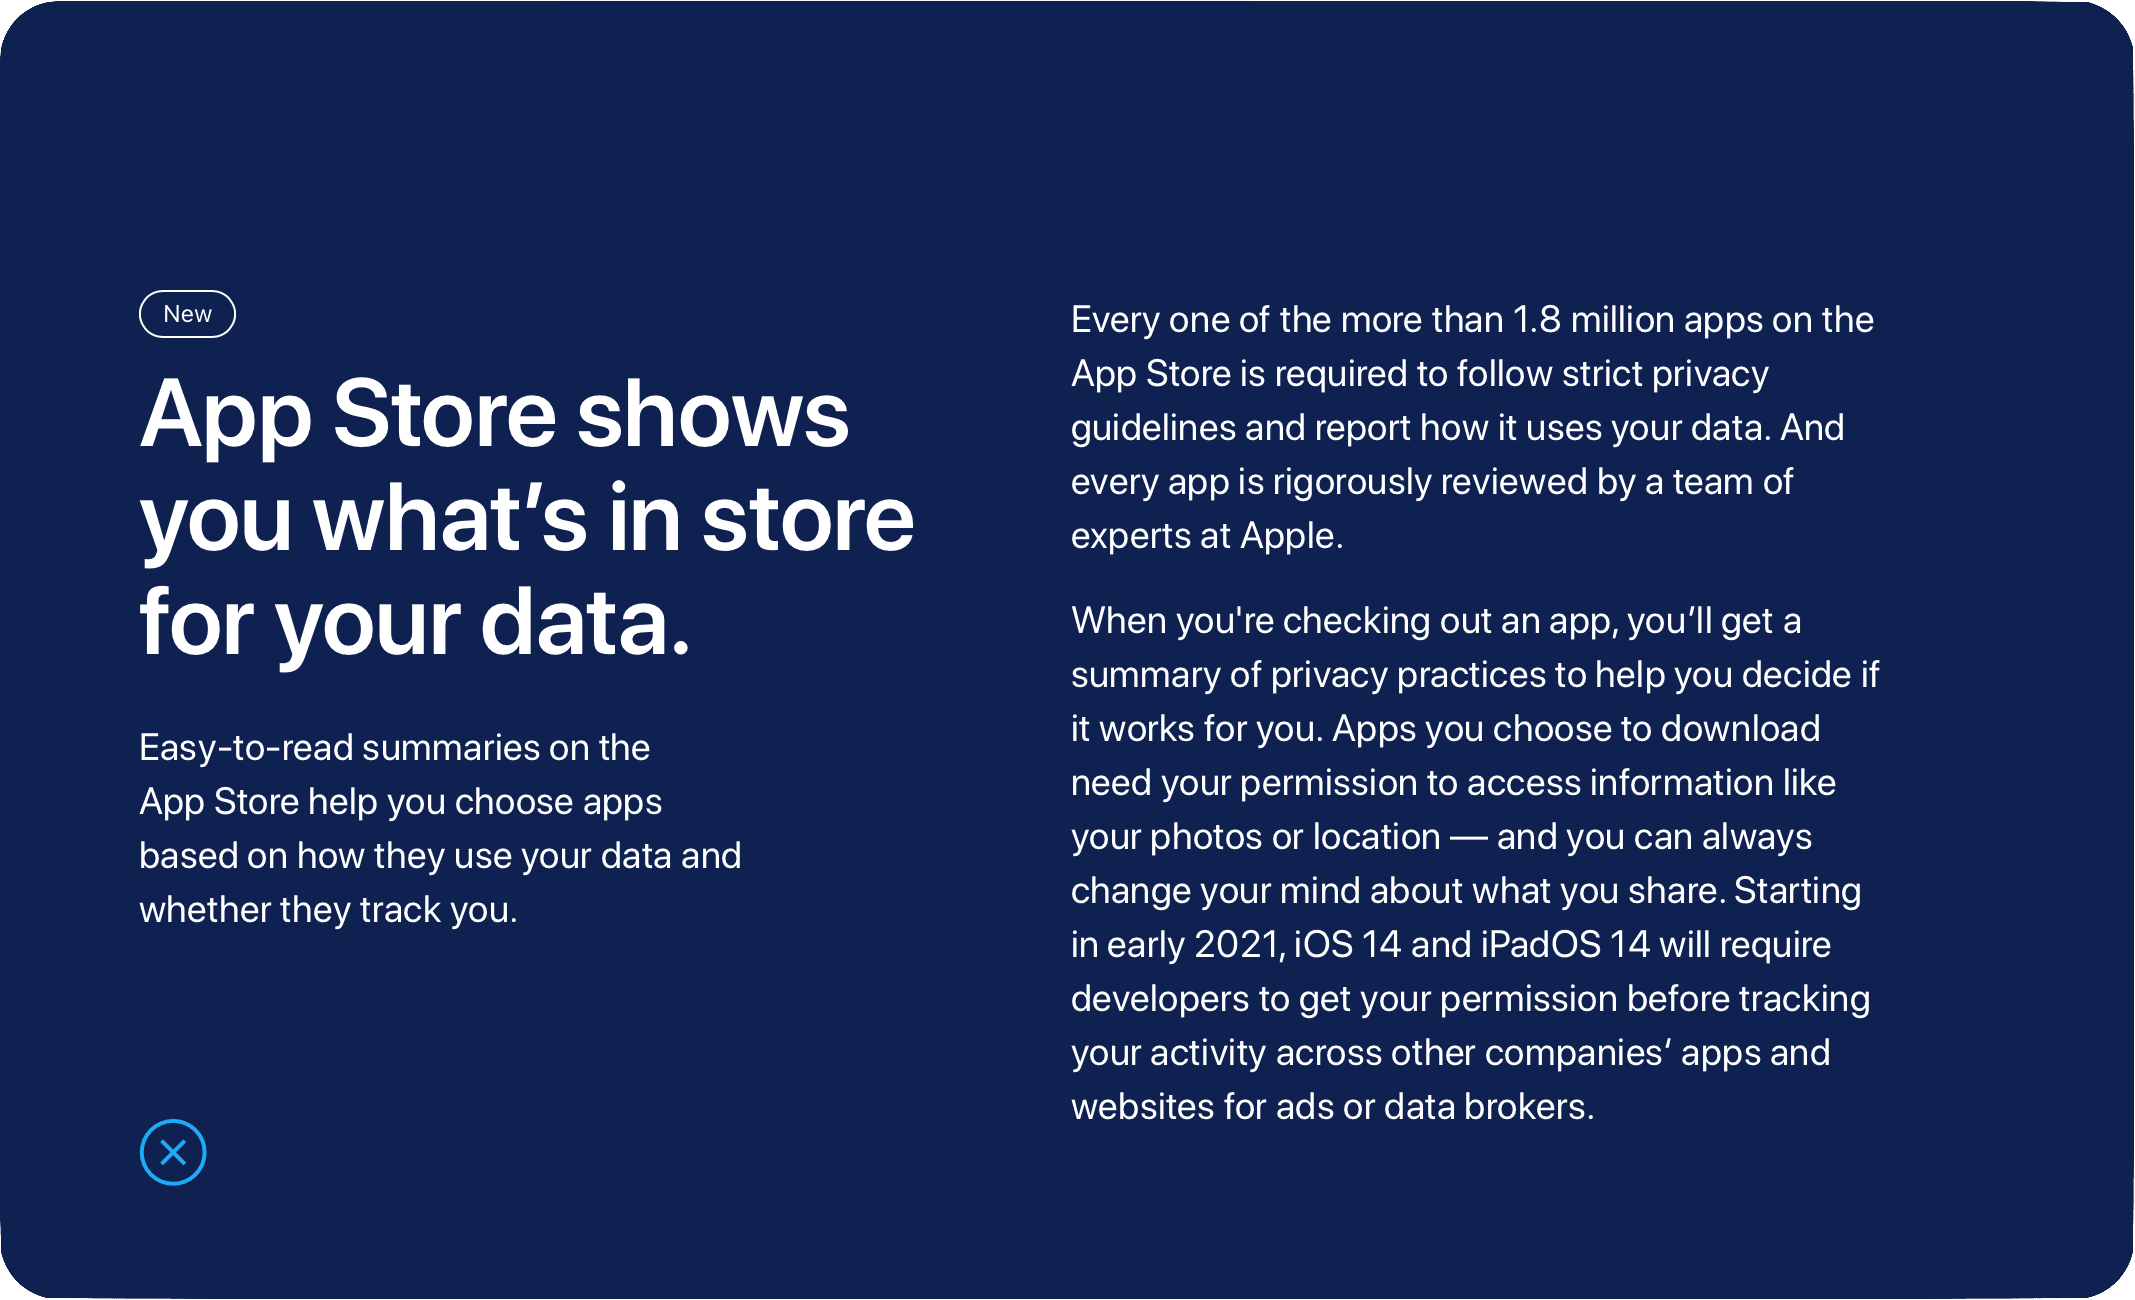 App Store shows you what's in store for your data.